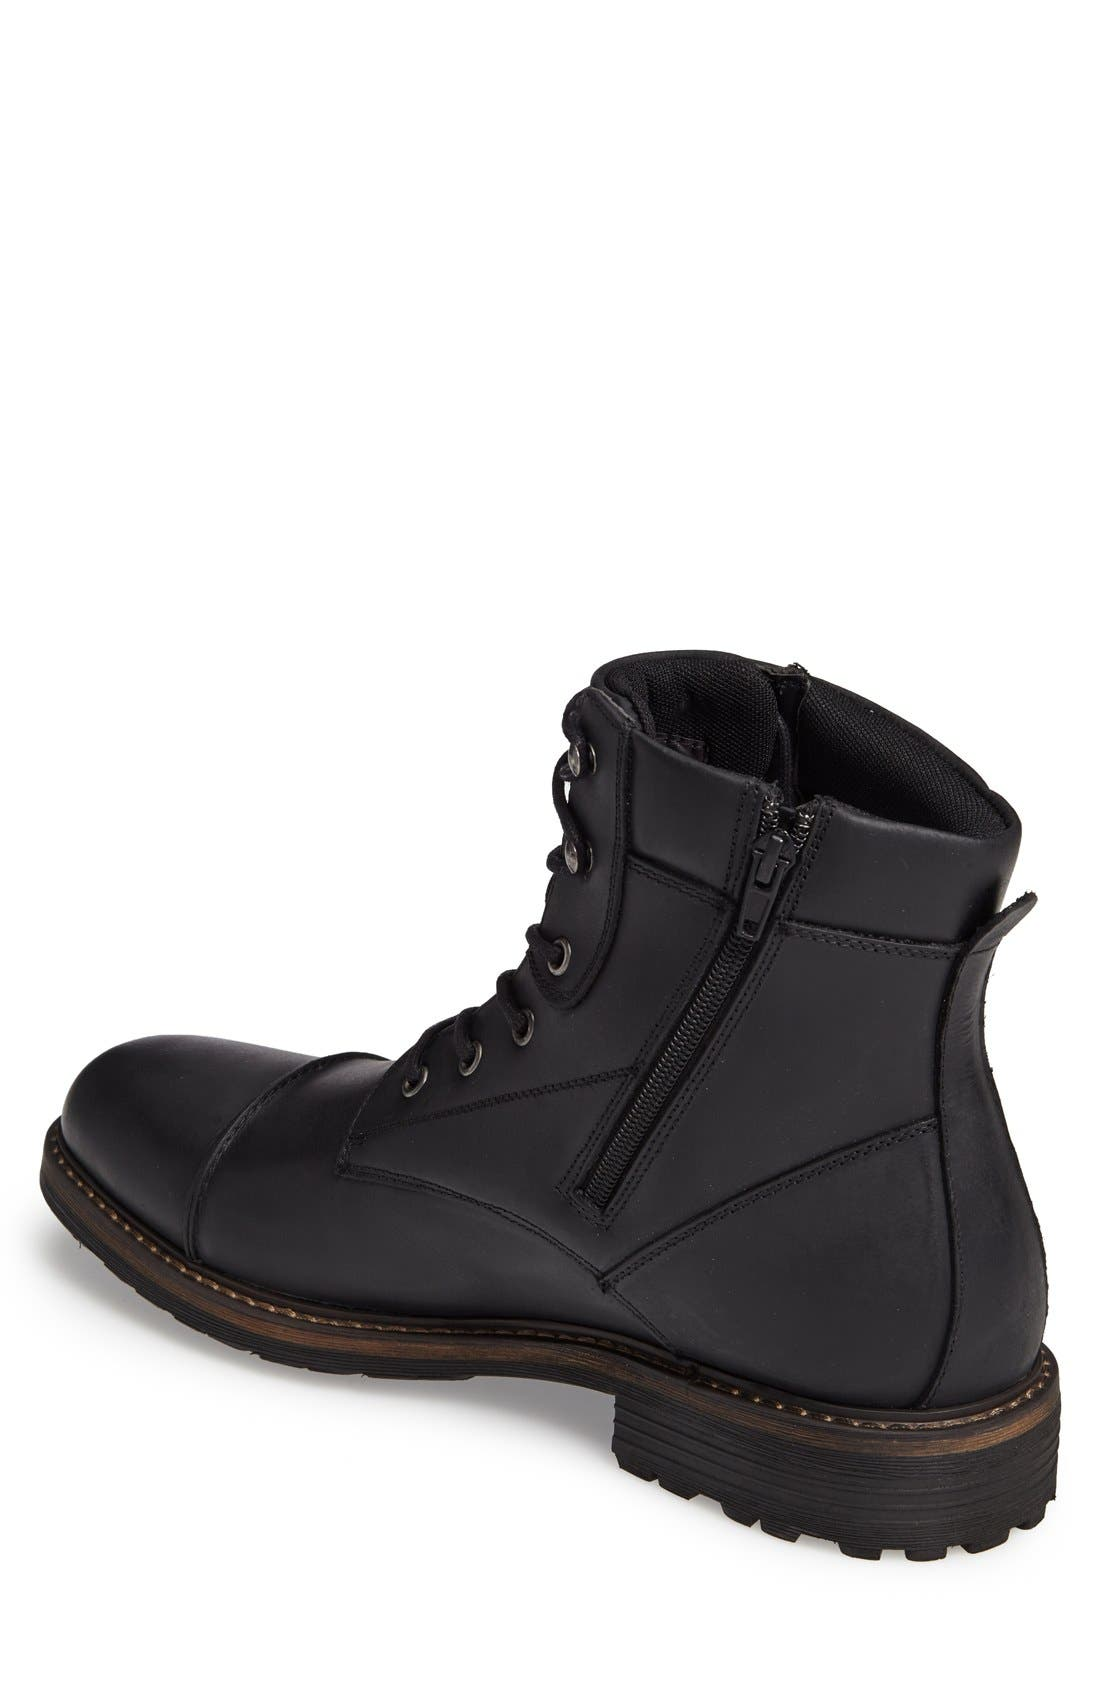 Derek Cap Toe Boot,                             Alternate thumbnail 13, color,